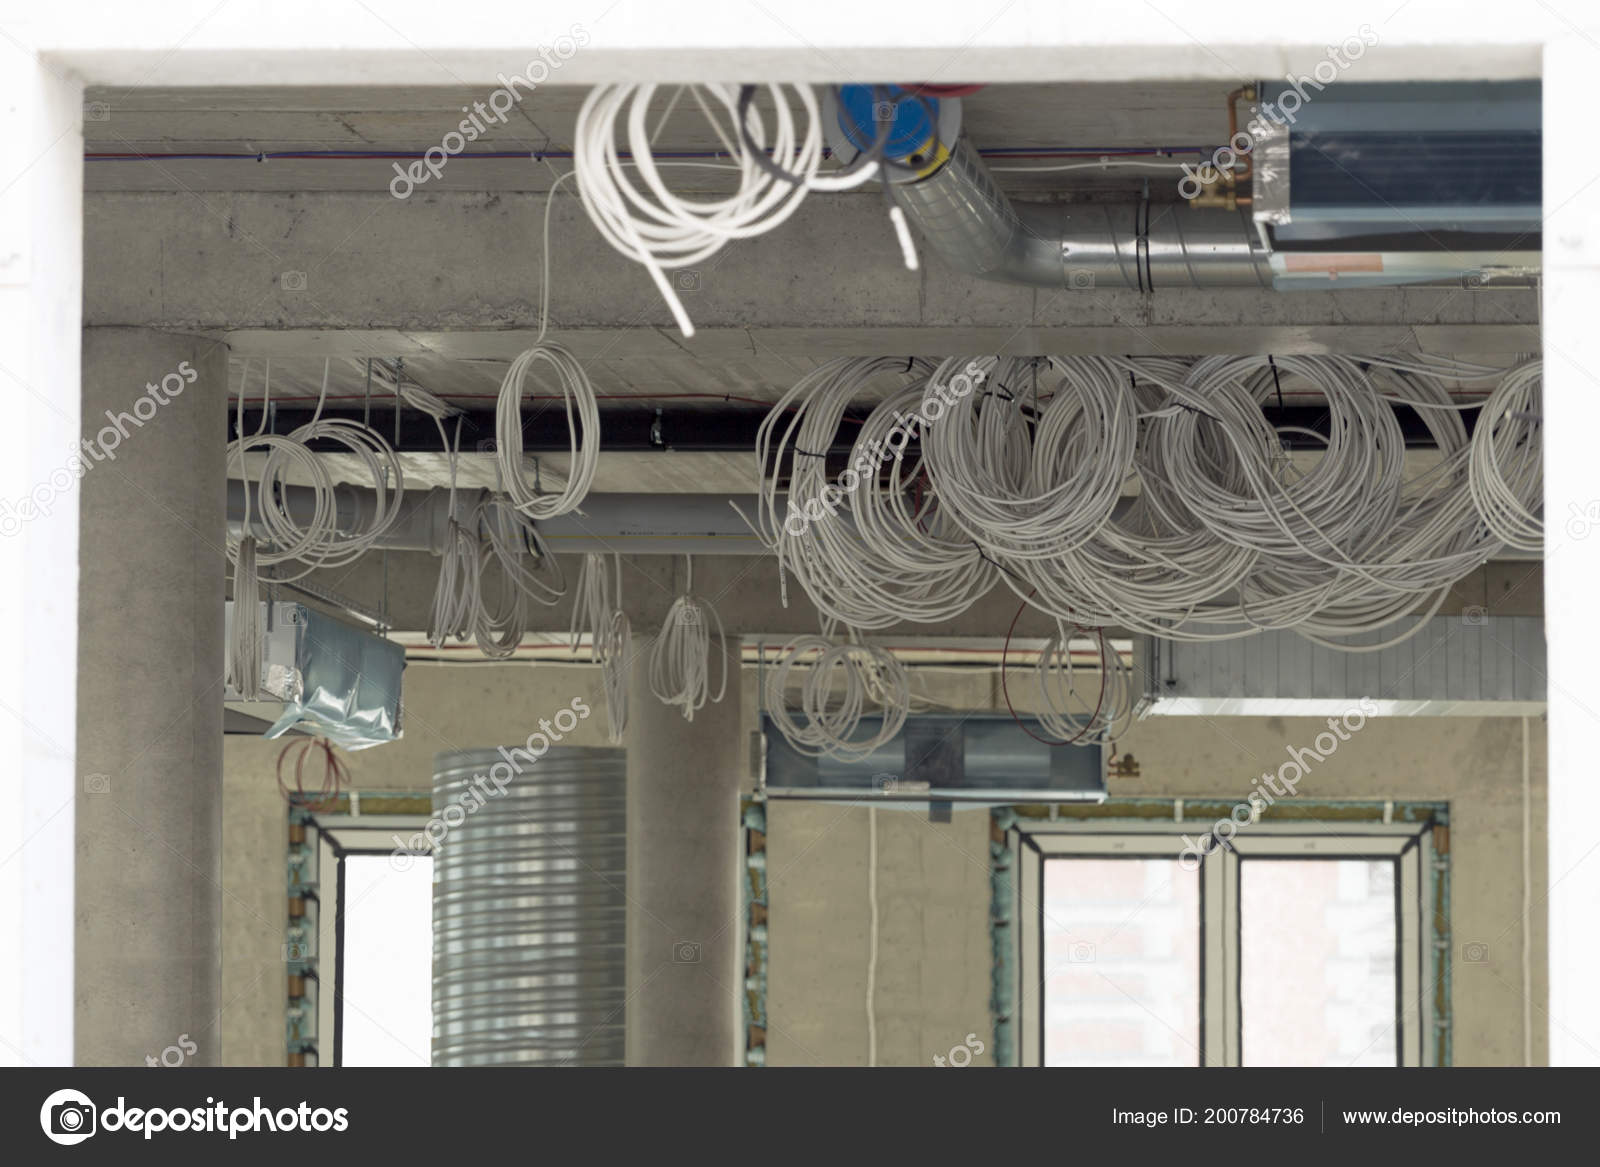 Cable Wiring In New Construction - Block And Schematic Diagrams •